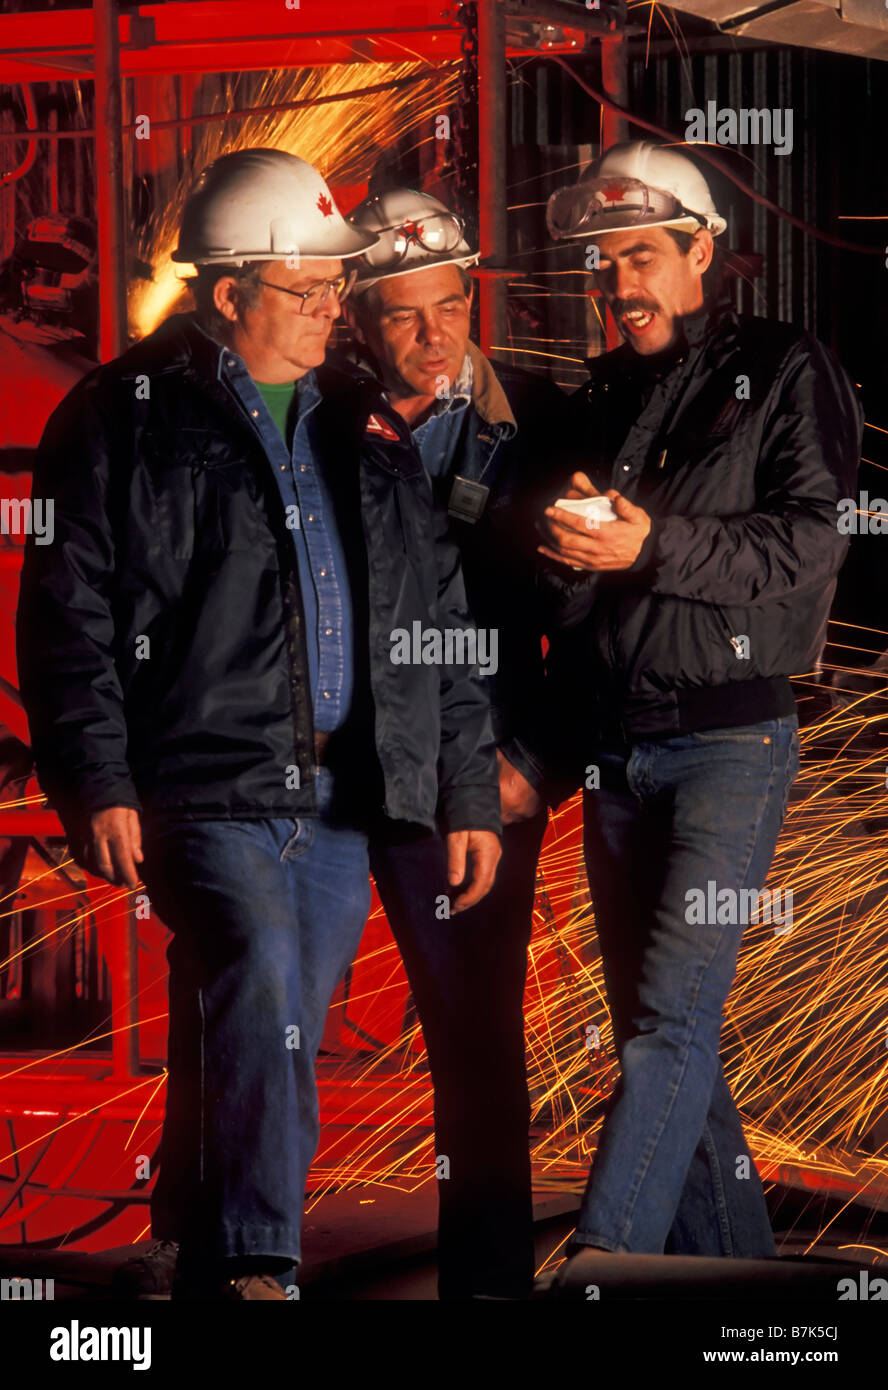 Project supervisors discussing pulp mill re fit with welding sparks in background, British Columbia, Canada. - Stock Image